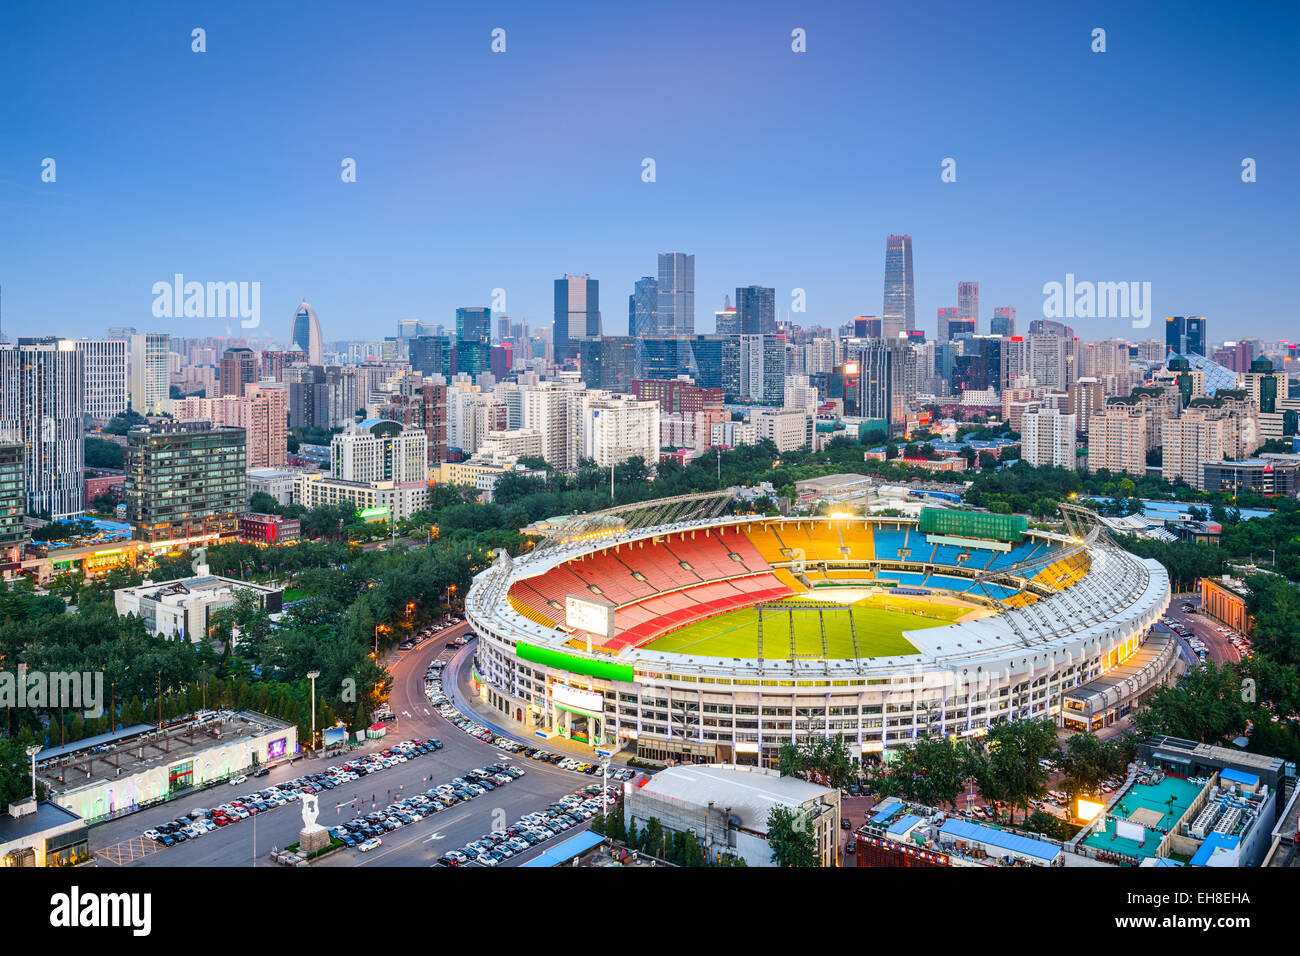 Beijing, China cityscape over the stadium towards the CBD. - Stock Image